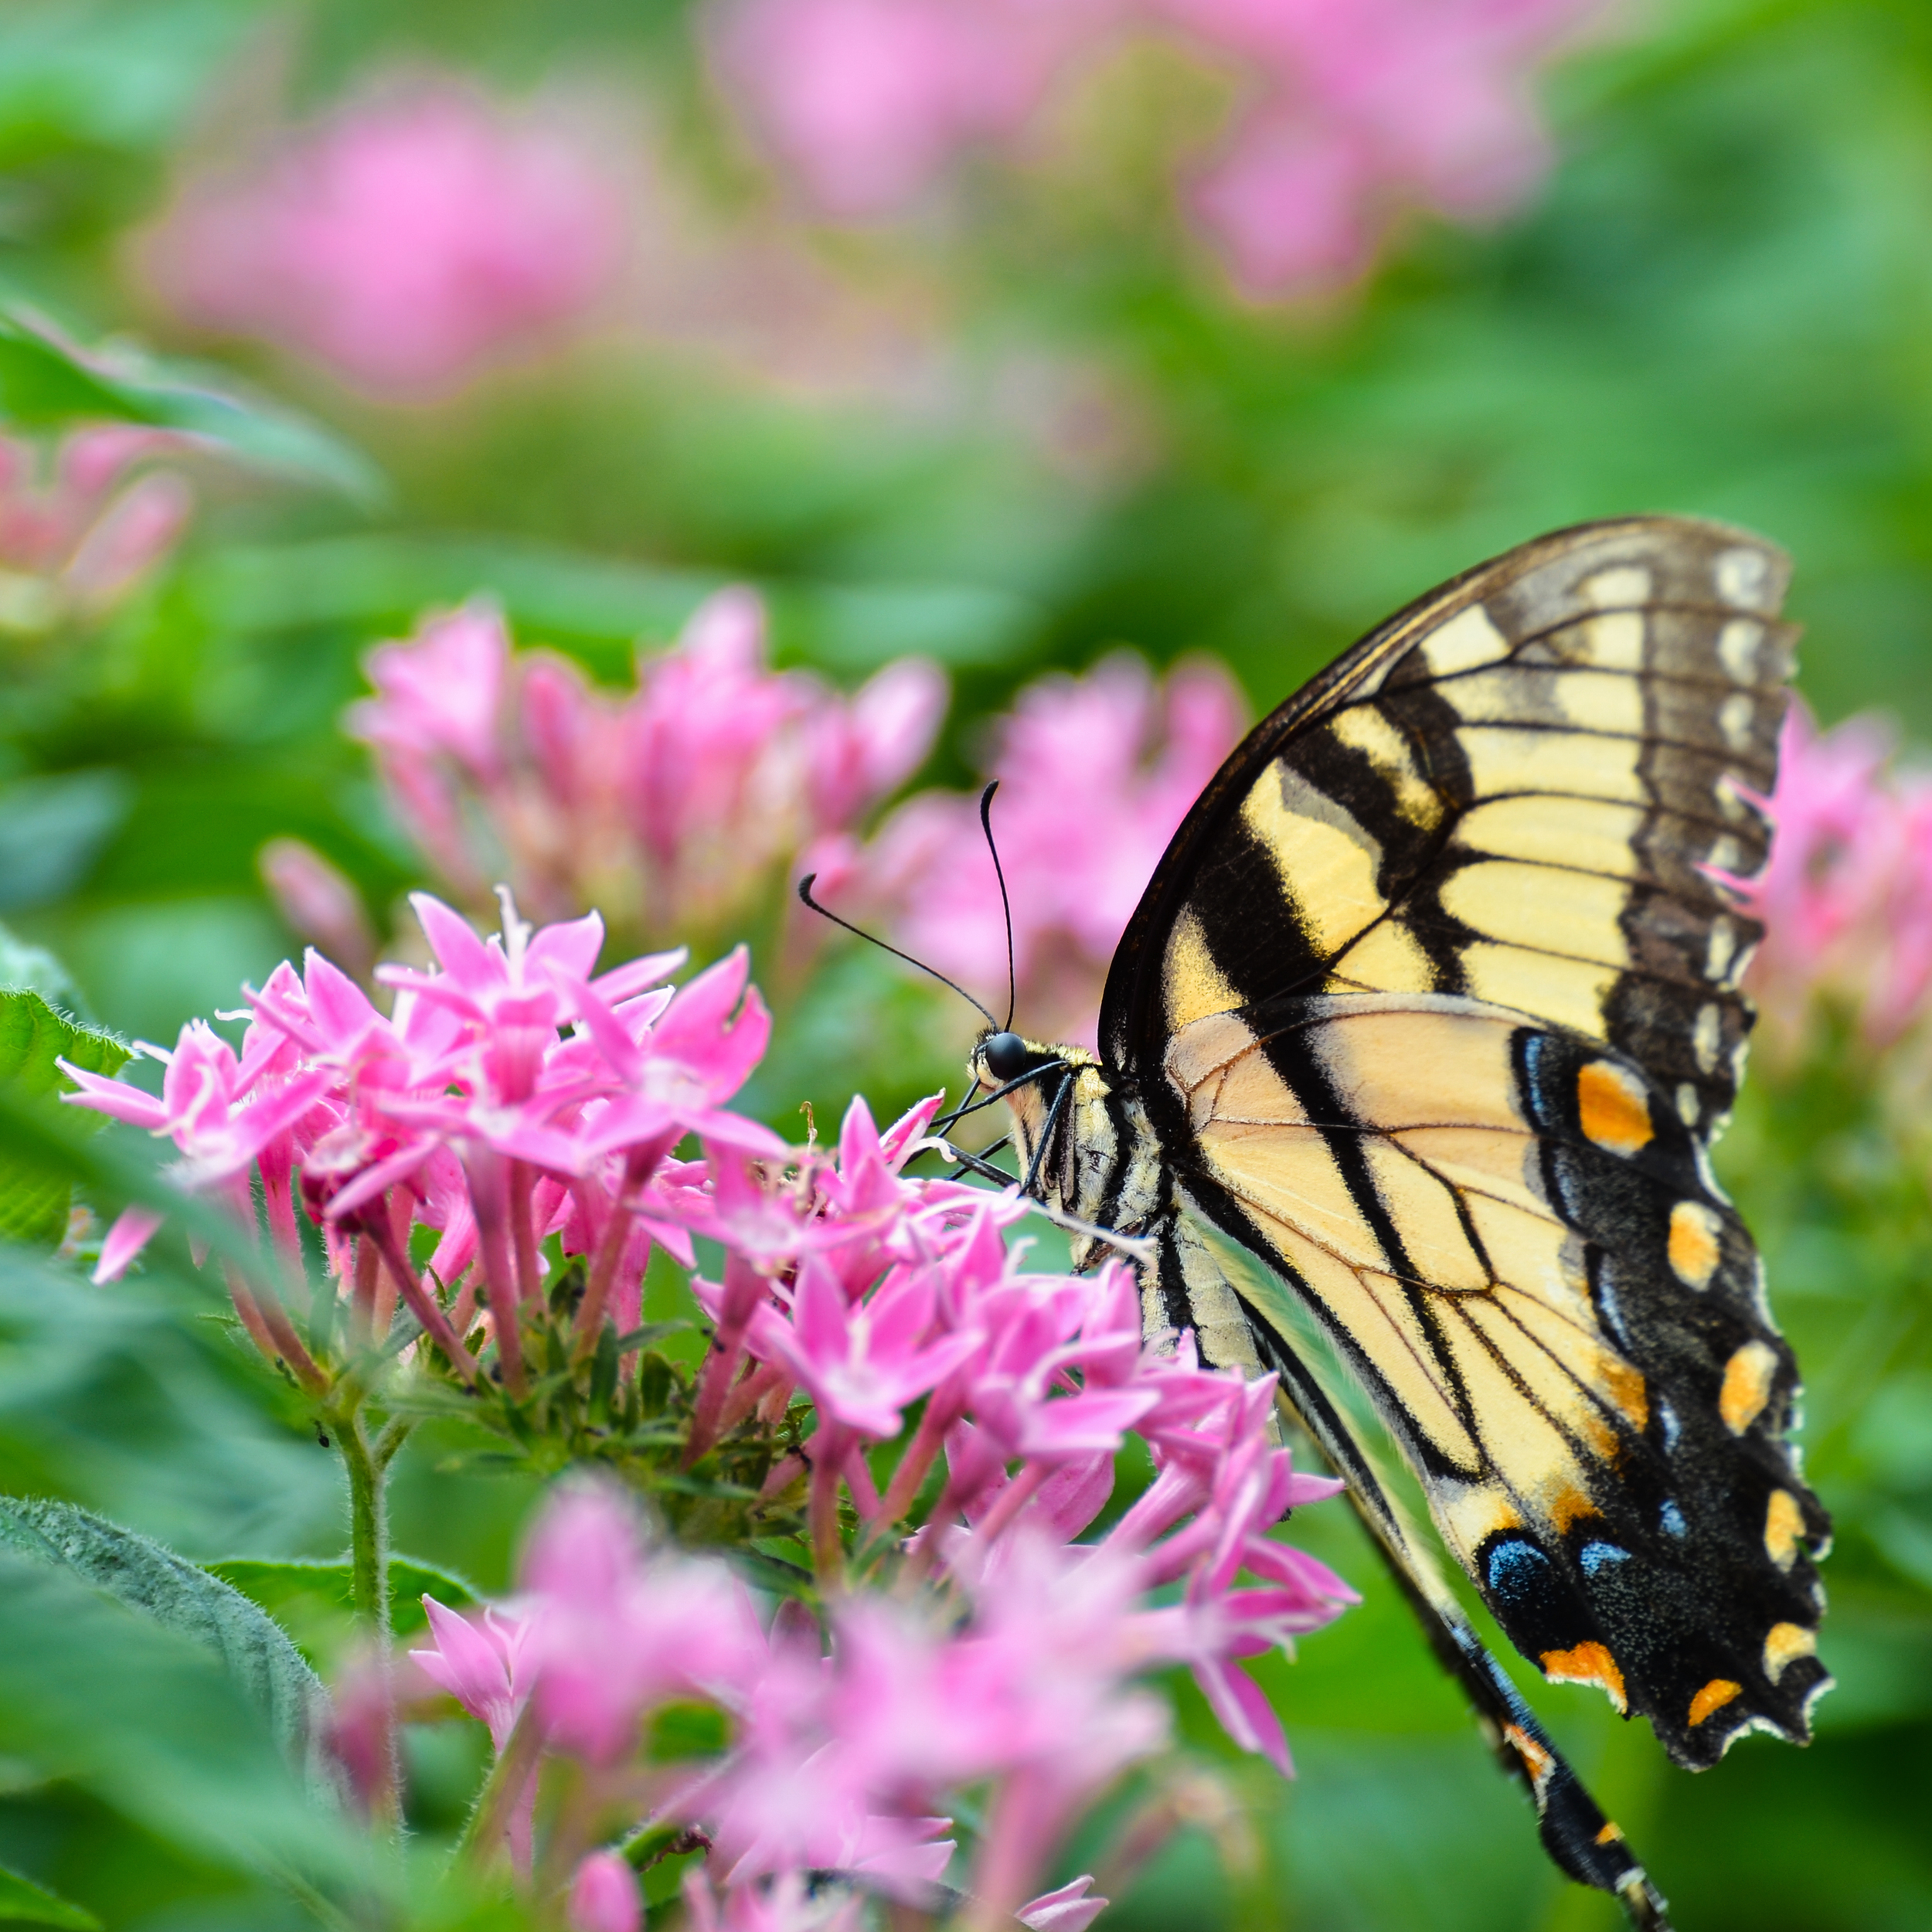 Colorful Butterfly on Pink Flower